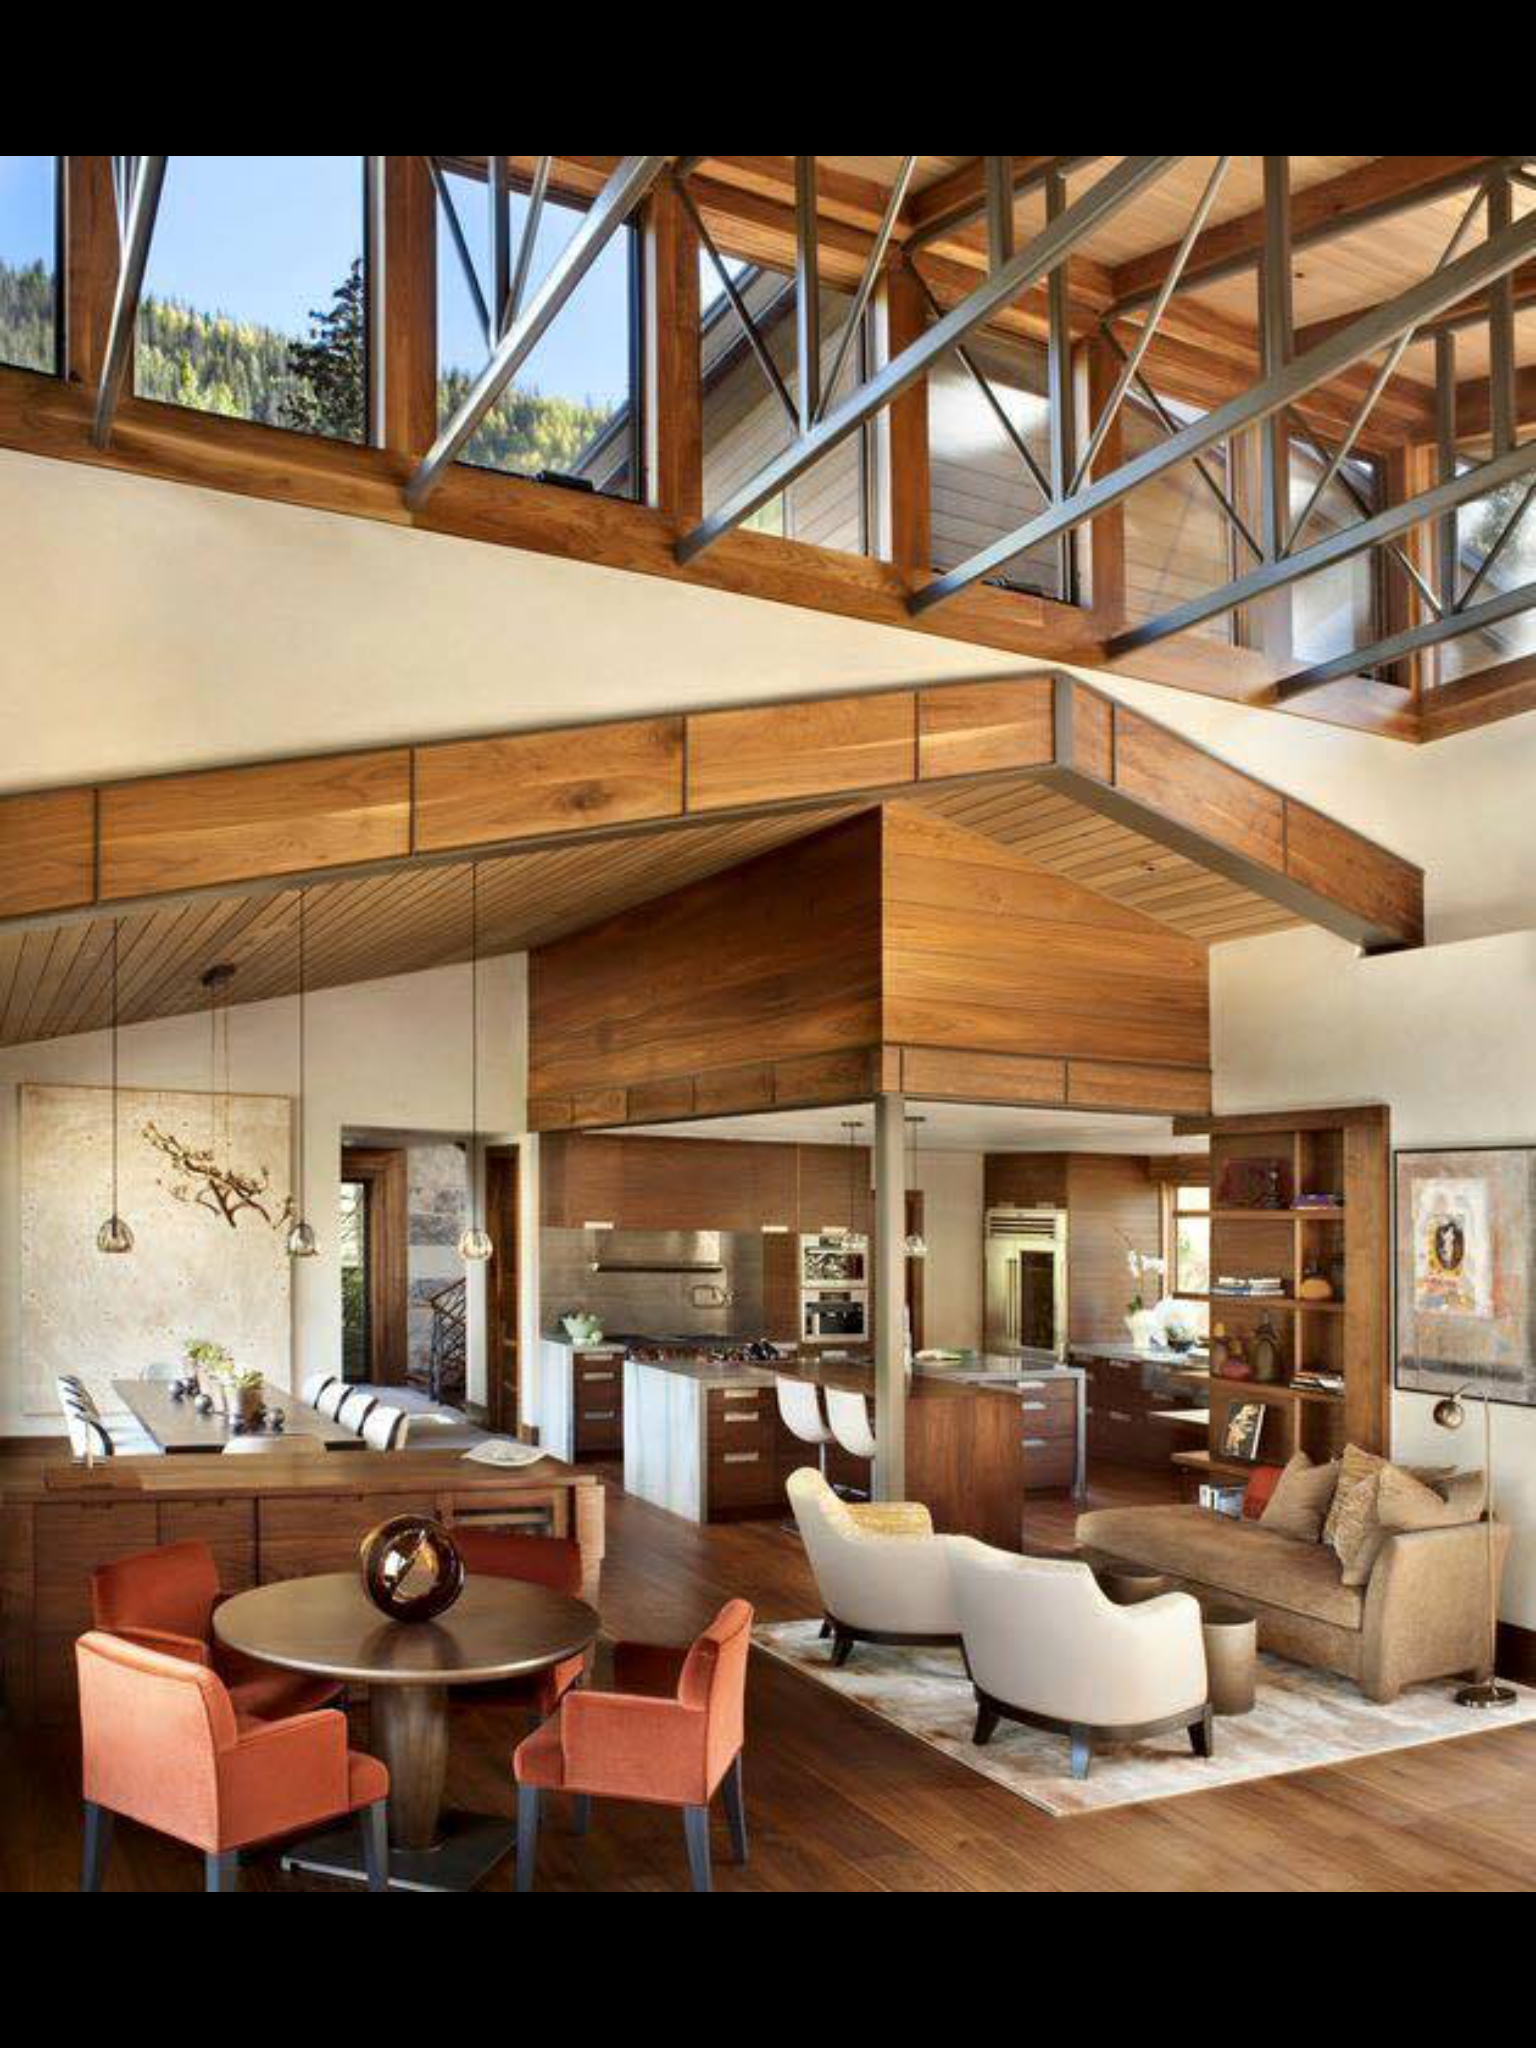 Contemporary Mountain Residence Situated In Vail, Colorado, Designed By Suman